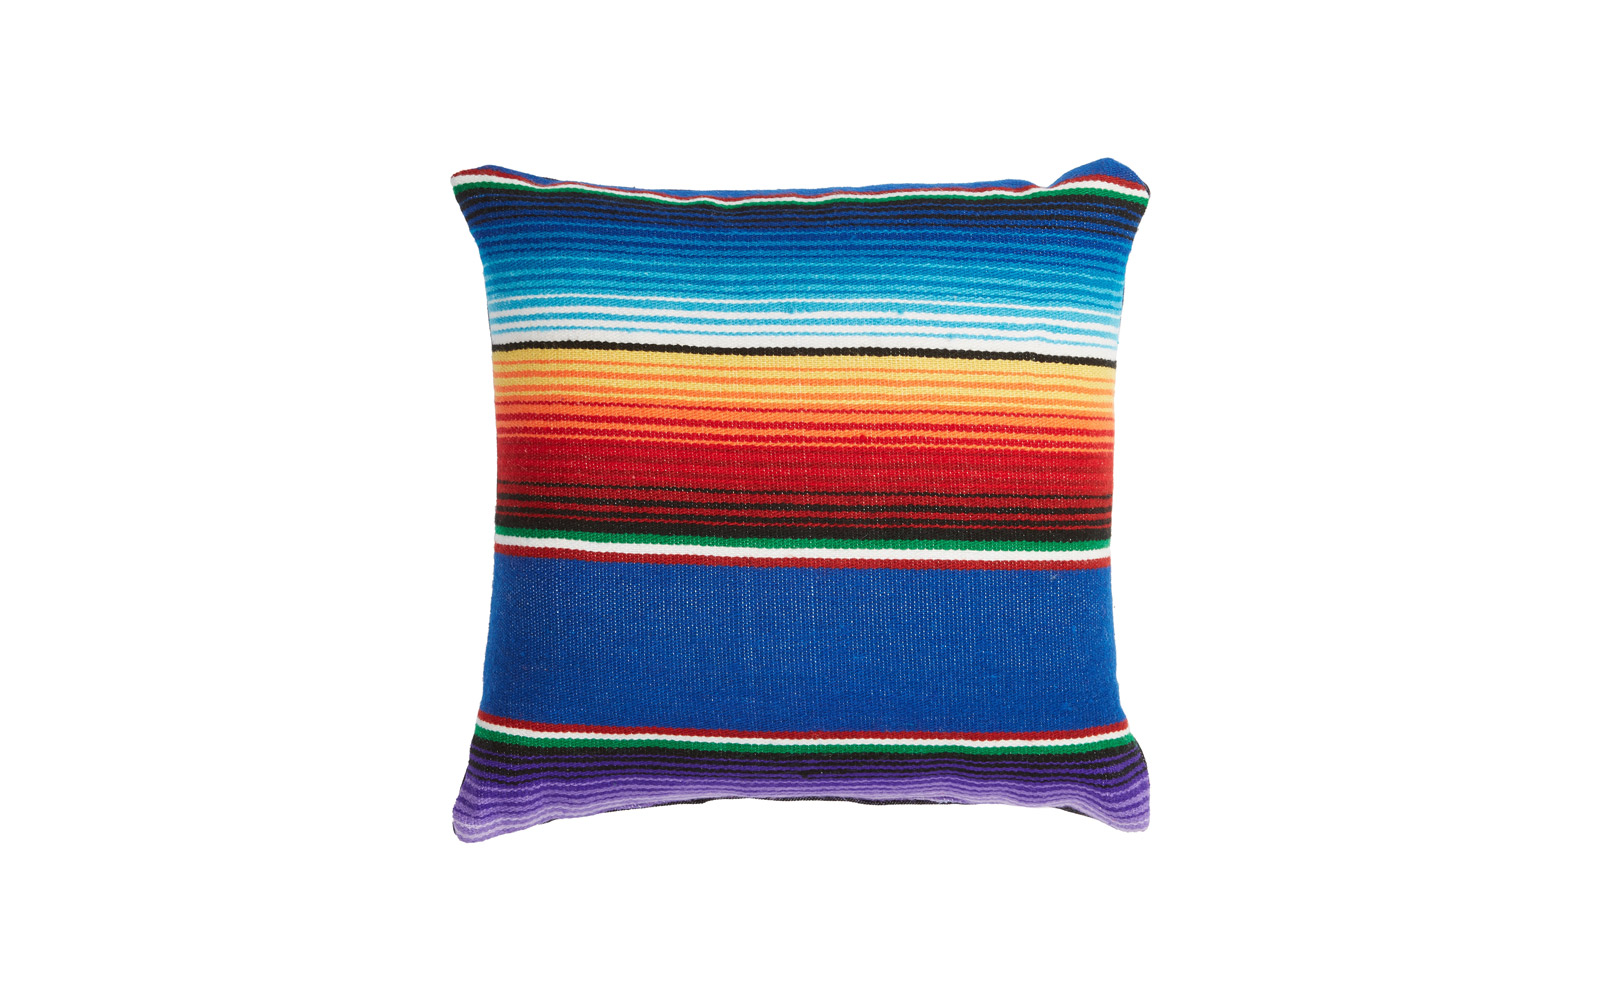 mexico pop-in at nordstrom home decor